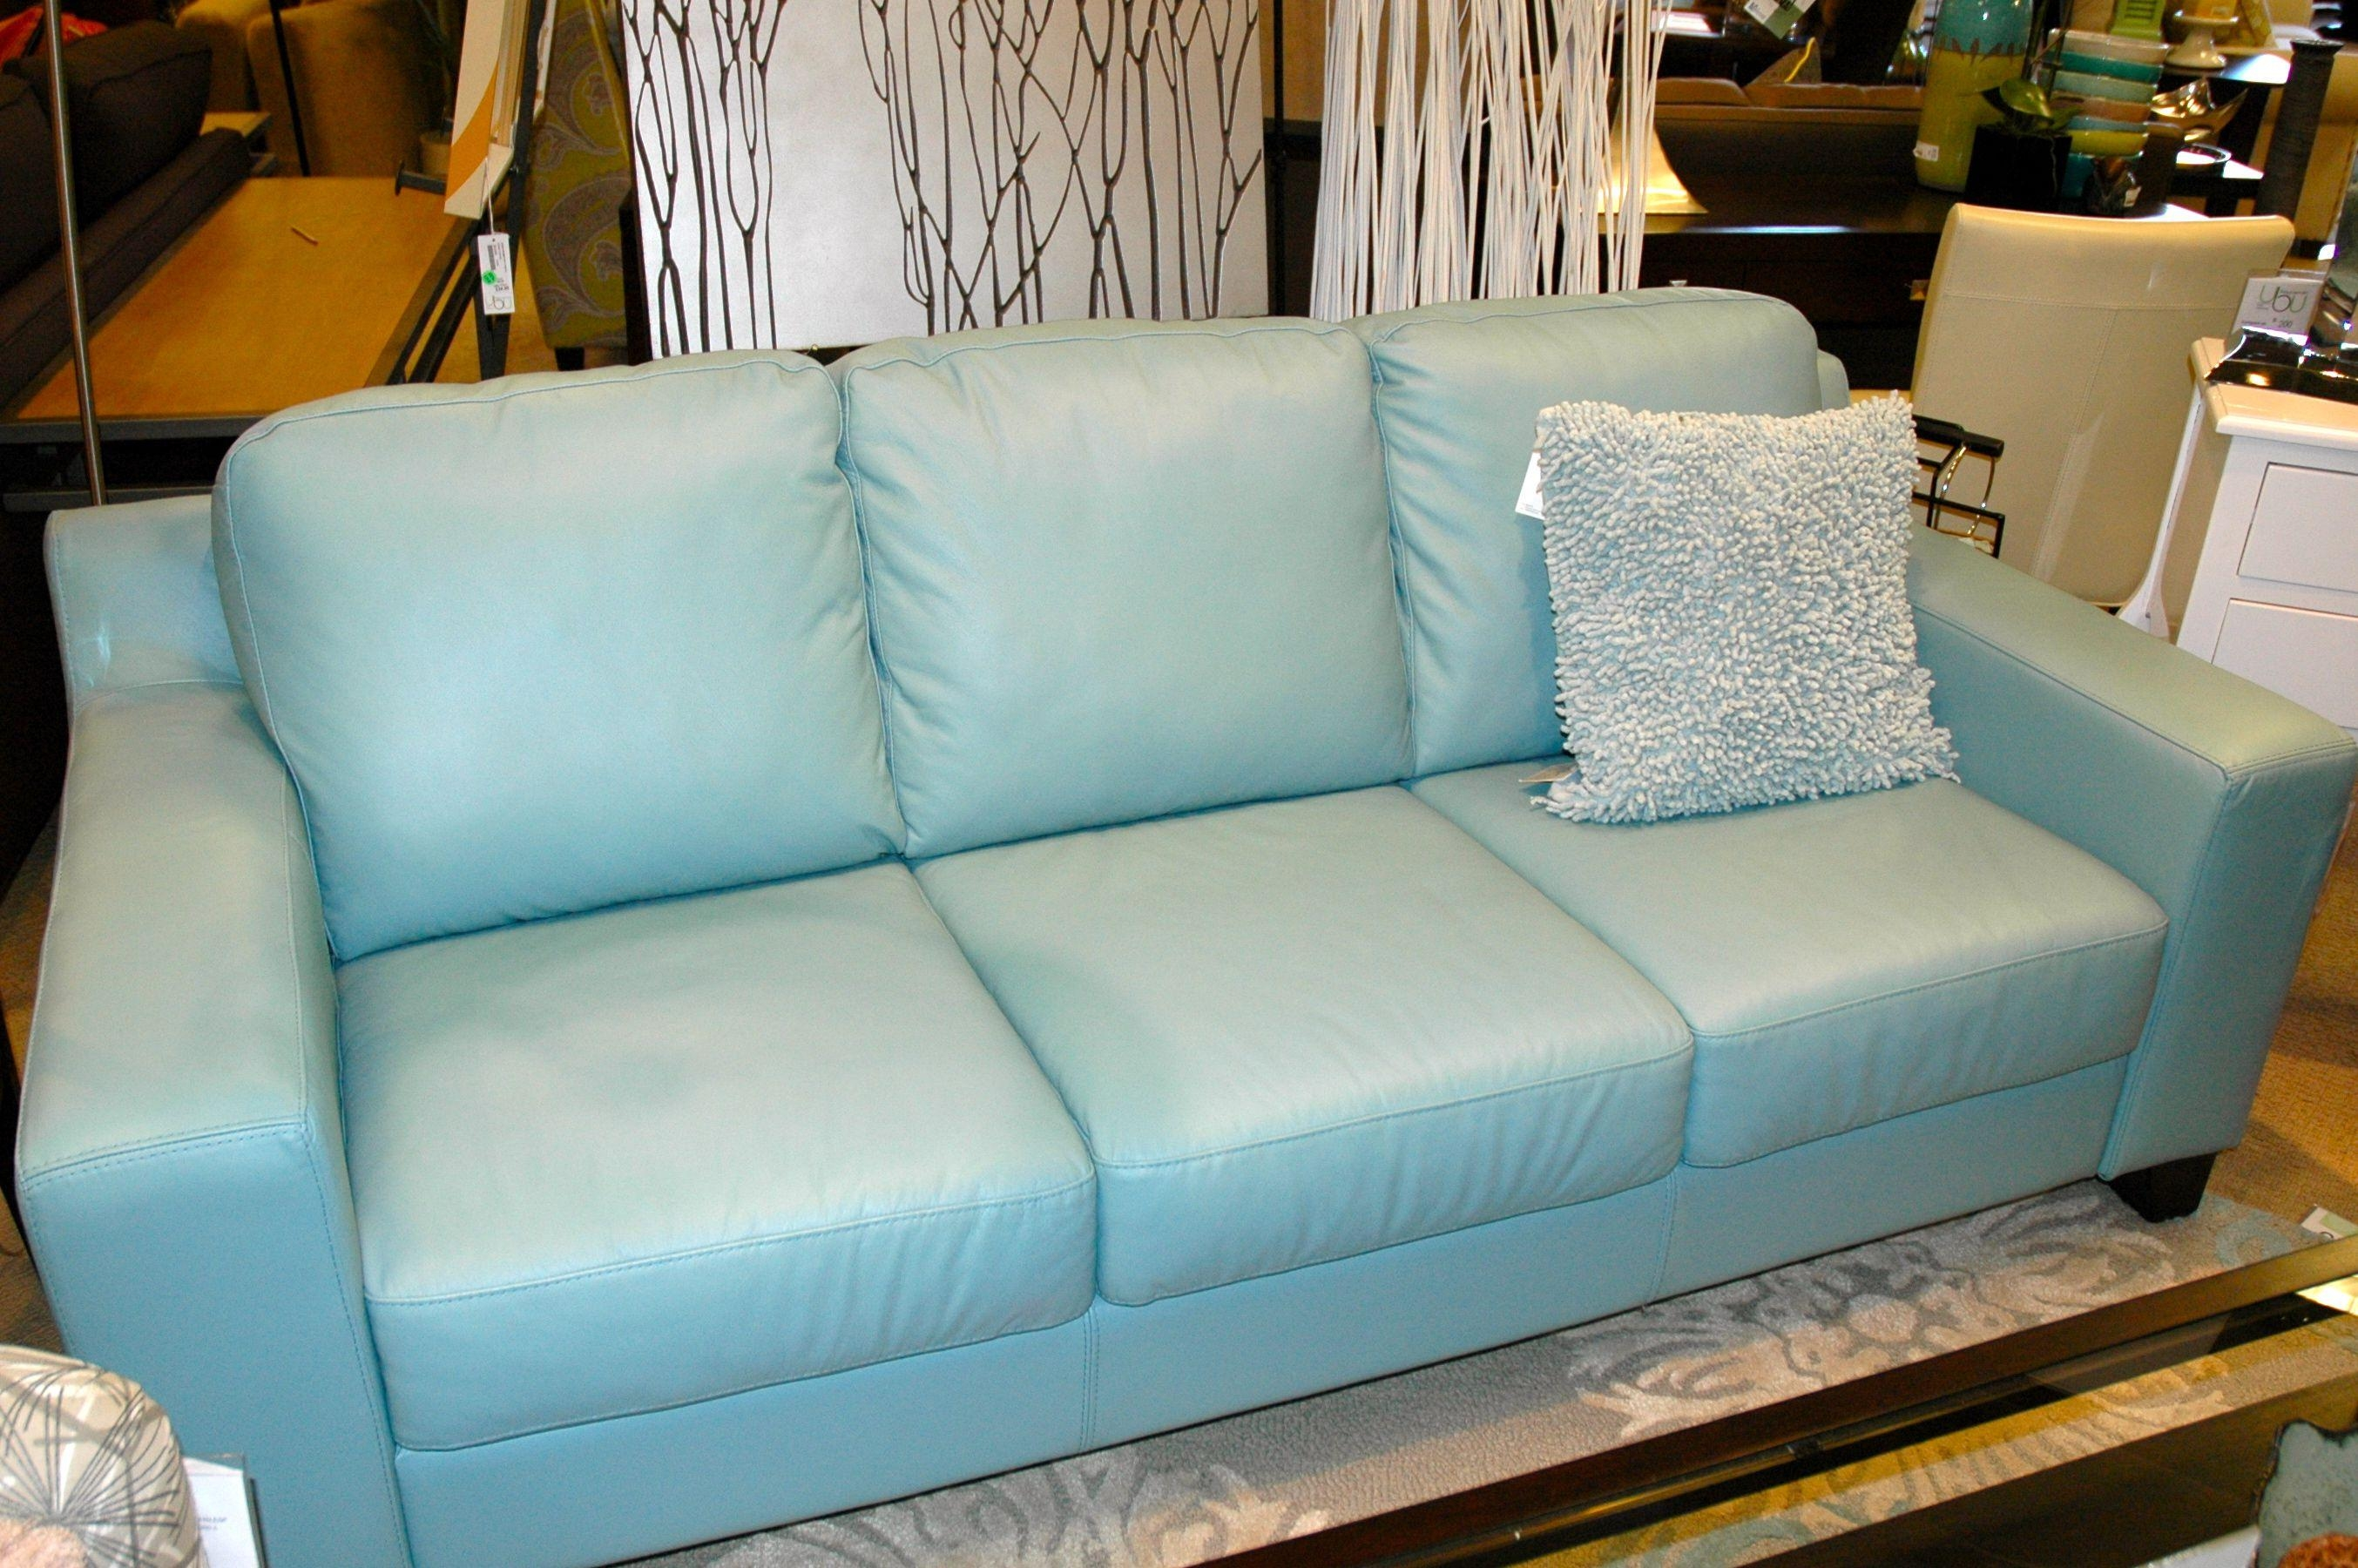 25 Best Ideas About Light Blue Sofa On Pinterest At Light Blue Inside Sky Blue Sofas (Image 2 of 20)